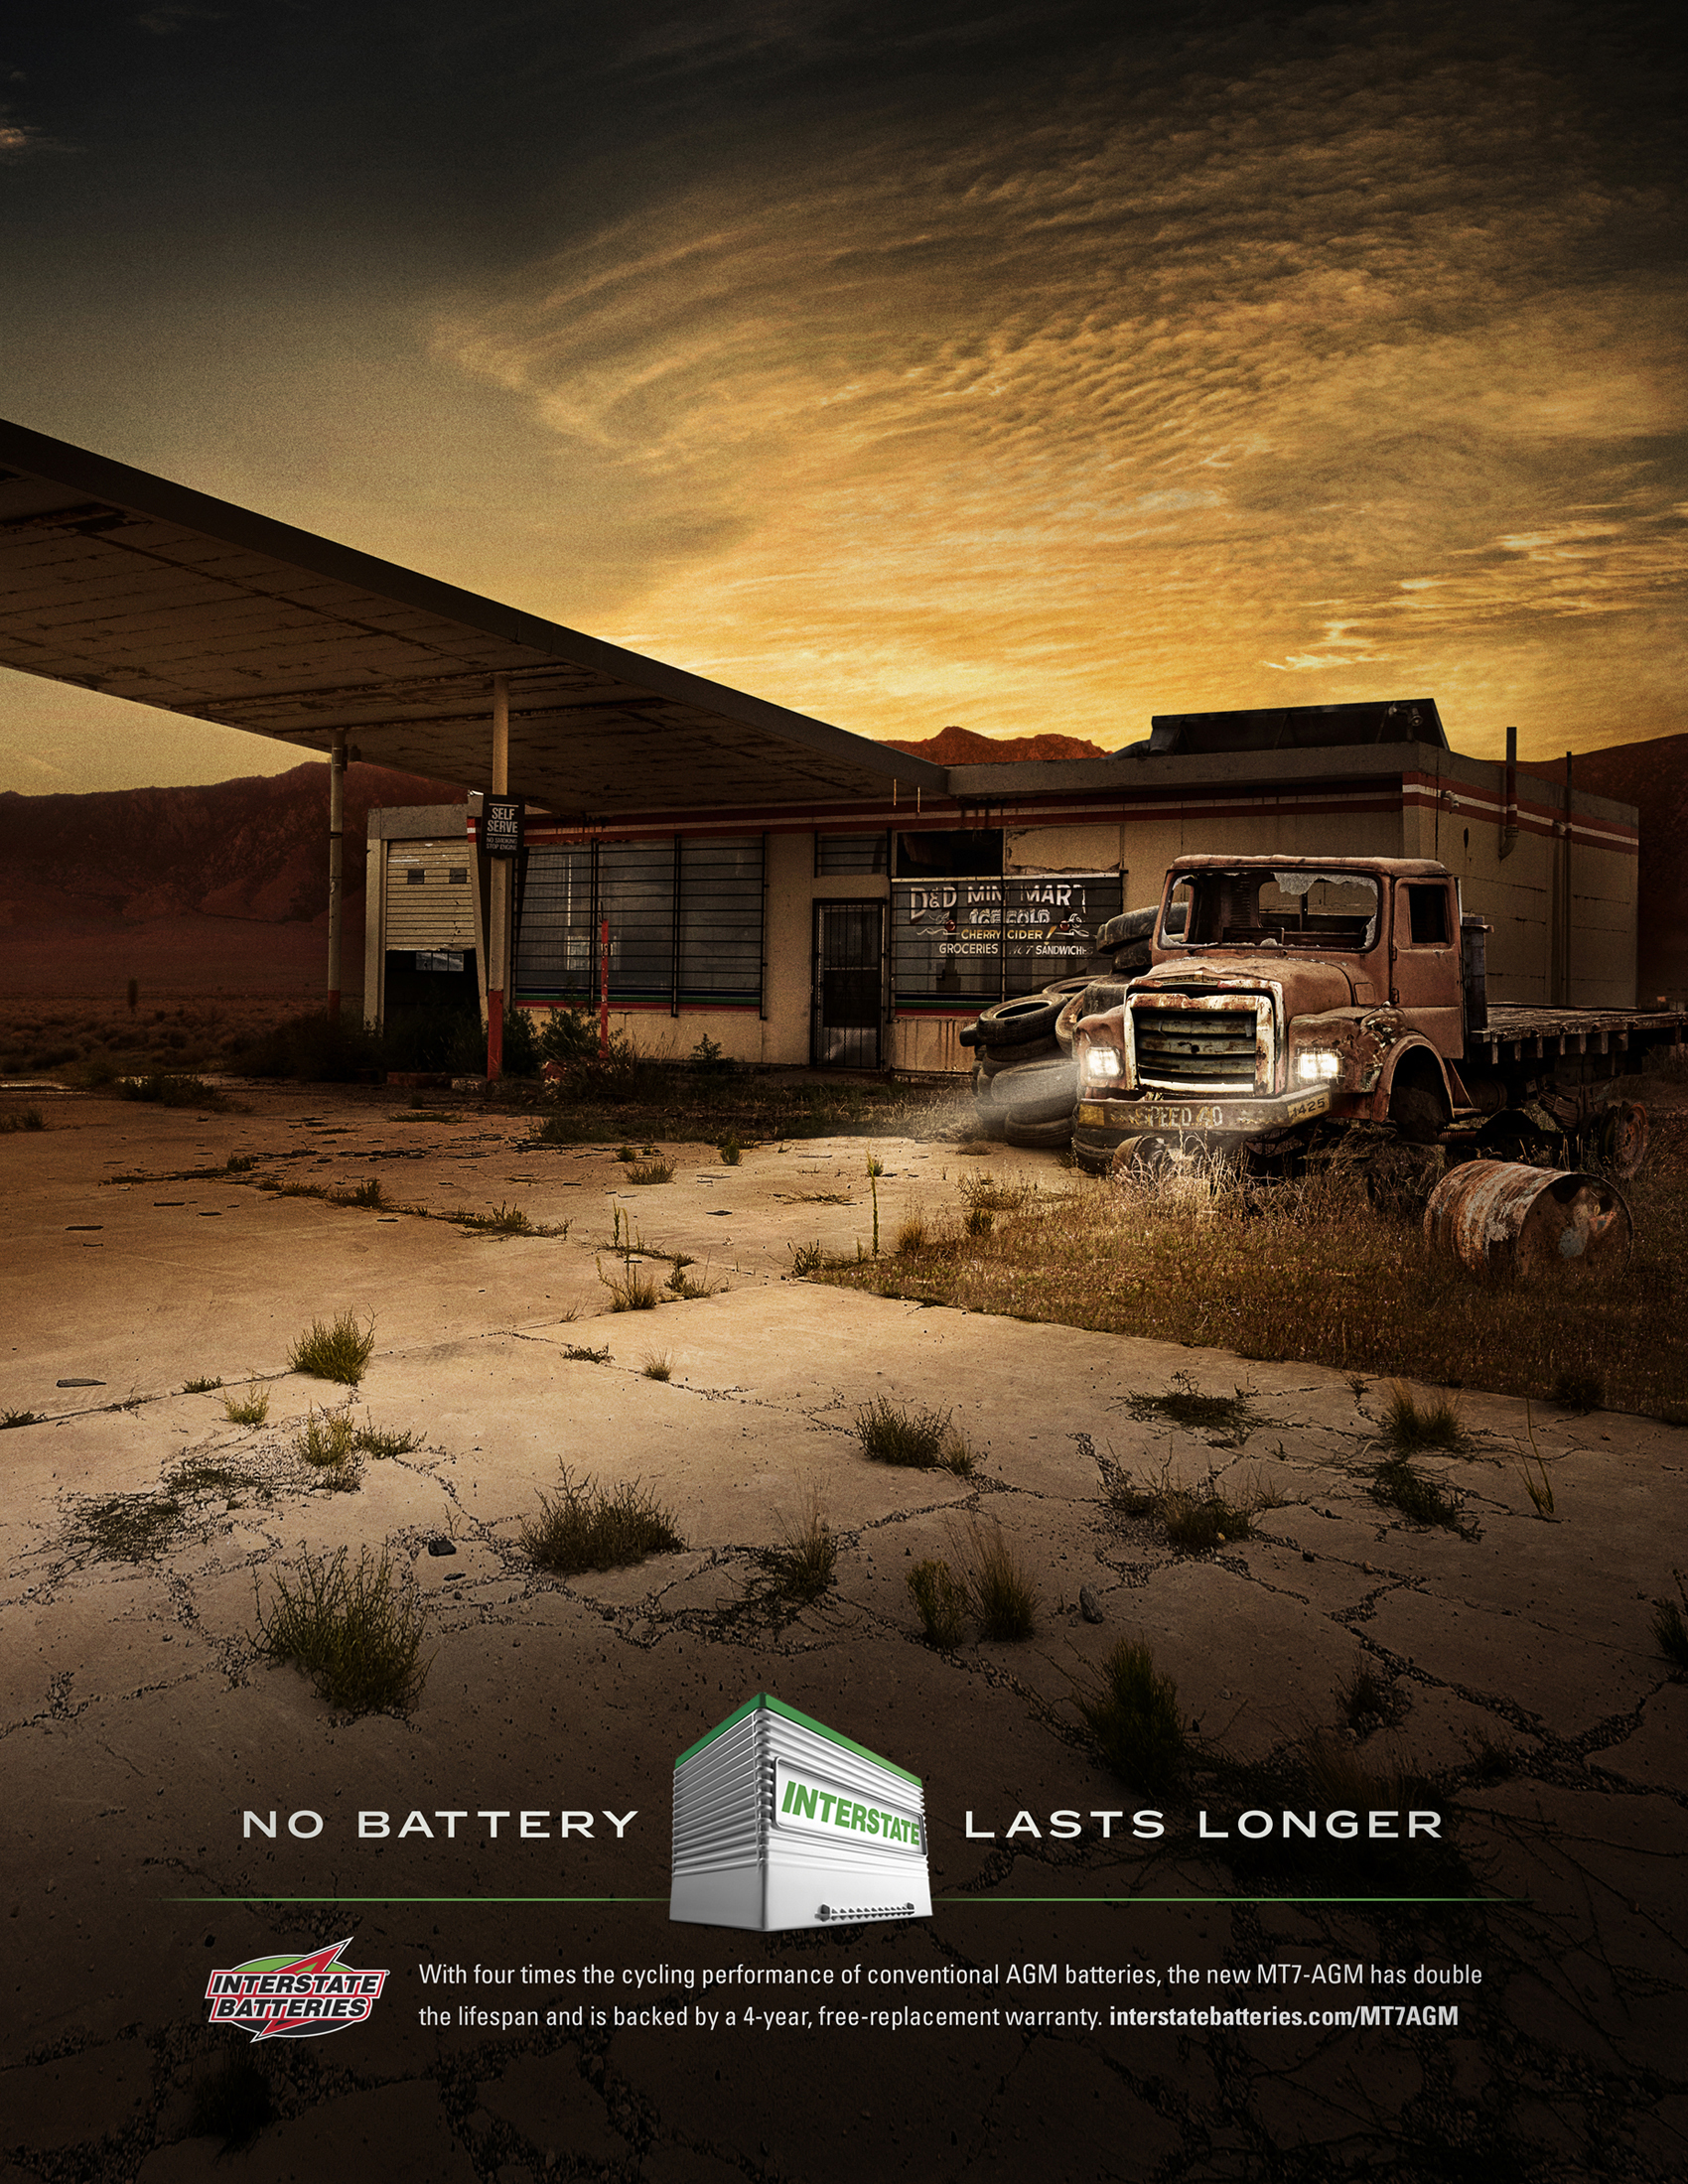 ryan-smith-creative-director-interstate-batteries-station